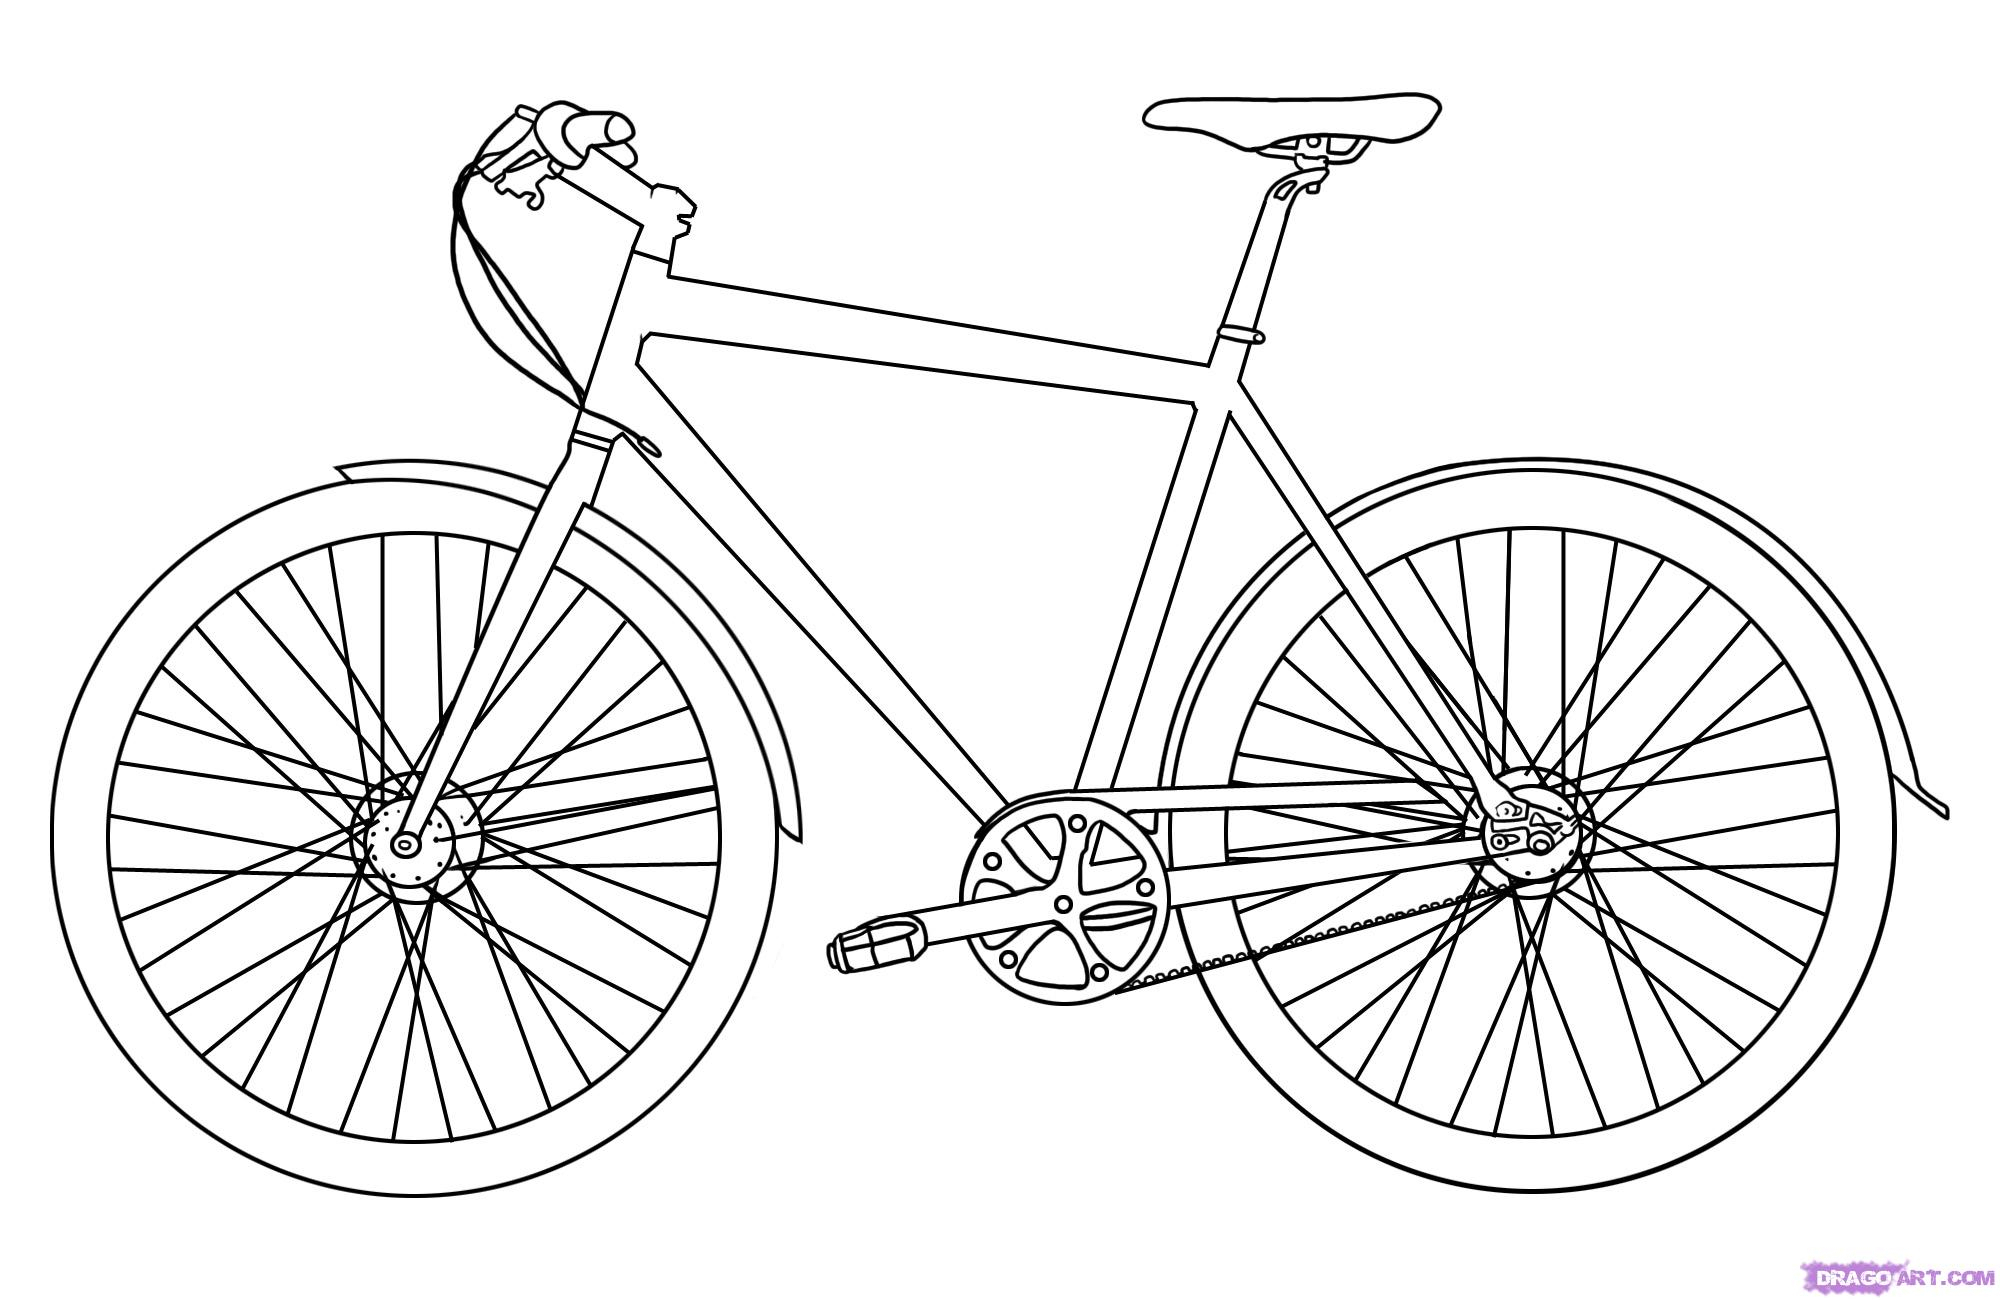 2000x1300 Bike Drawing For Kids How To Draw A Bicycle, Step By Step, Stuff